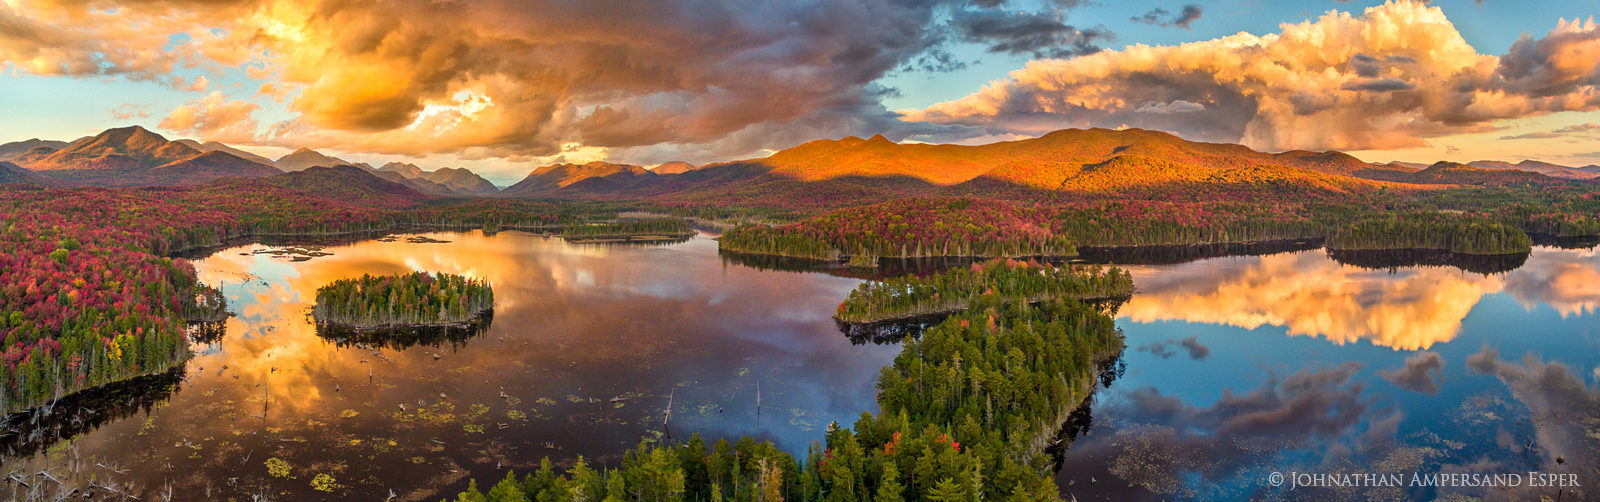 drone,aerial,Boreas Pond,Boreas Ponds,Adirondacks,High Peaks,Adirondack High Peaks,fall,2016,panorama,stormclouds,lake,sunset, photo